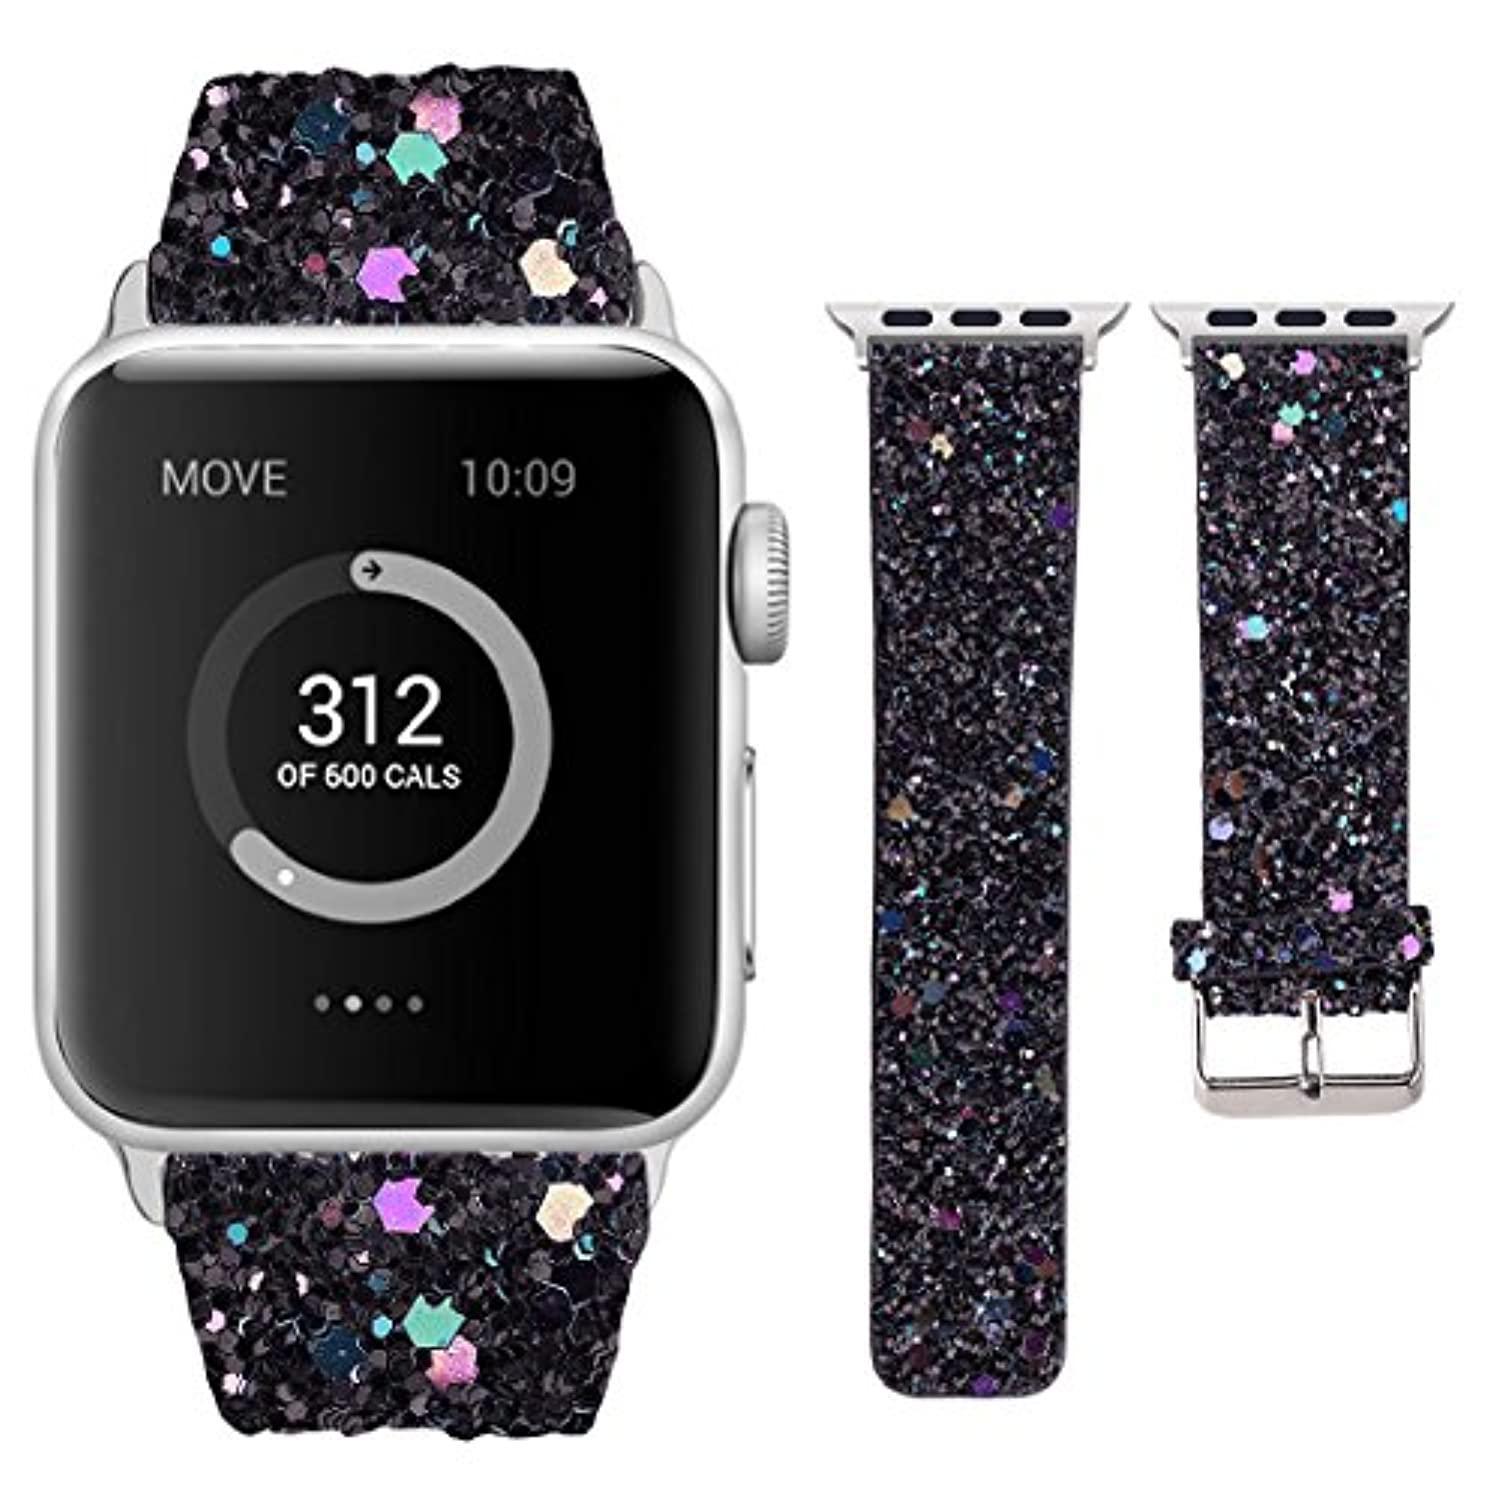 Moonooda Compatible with Apple Watch Bands 38(40) mm/42(44) mm, Women Wristband Replacement for iWatch Band, Bling Glitter Strap Belt Compatible with Apple Watch Series 4/3/2/1